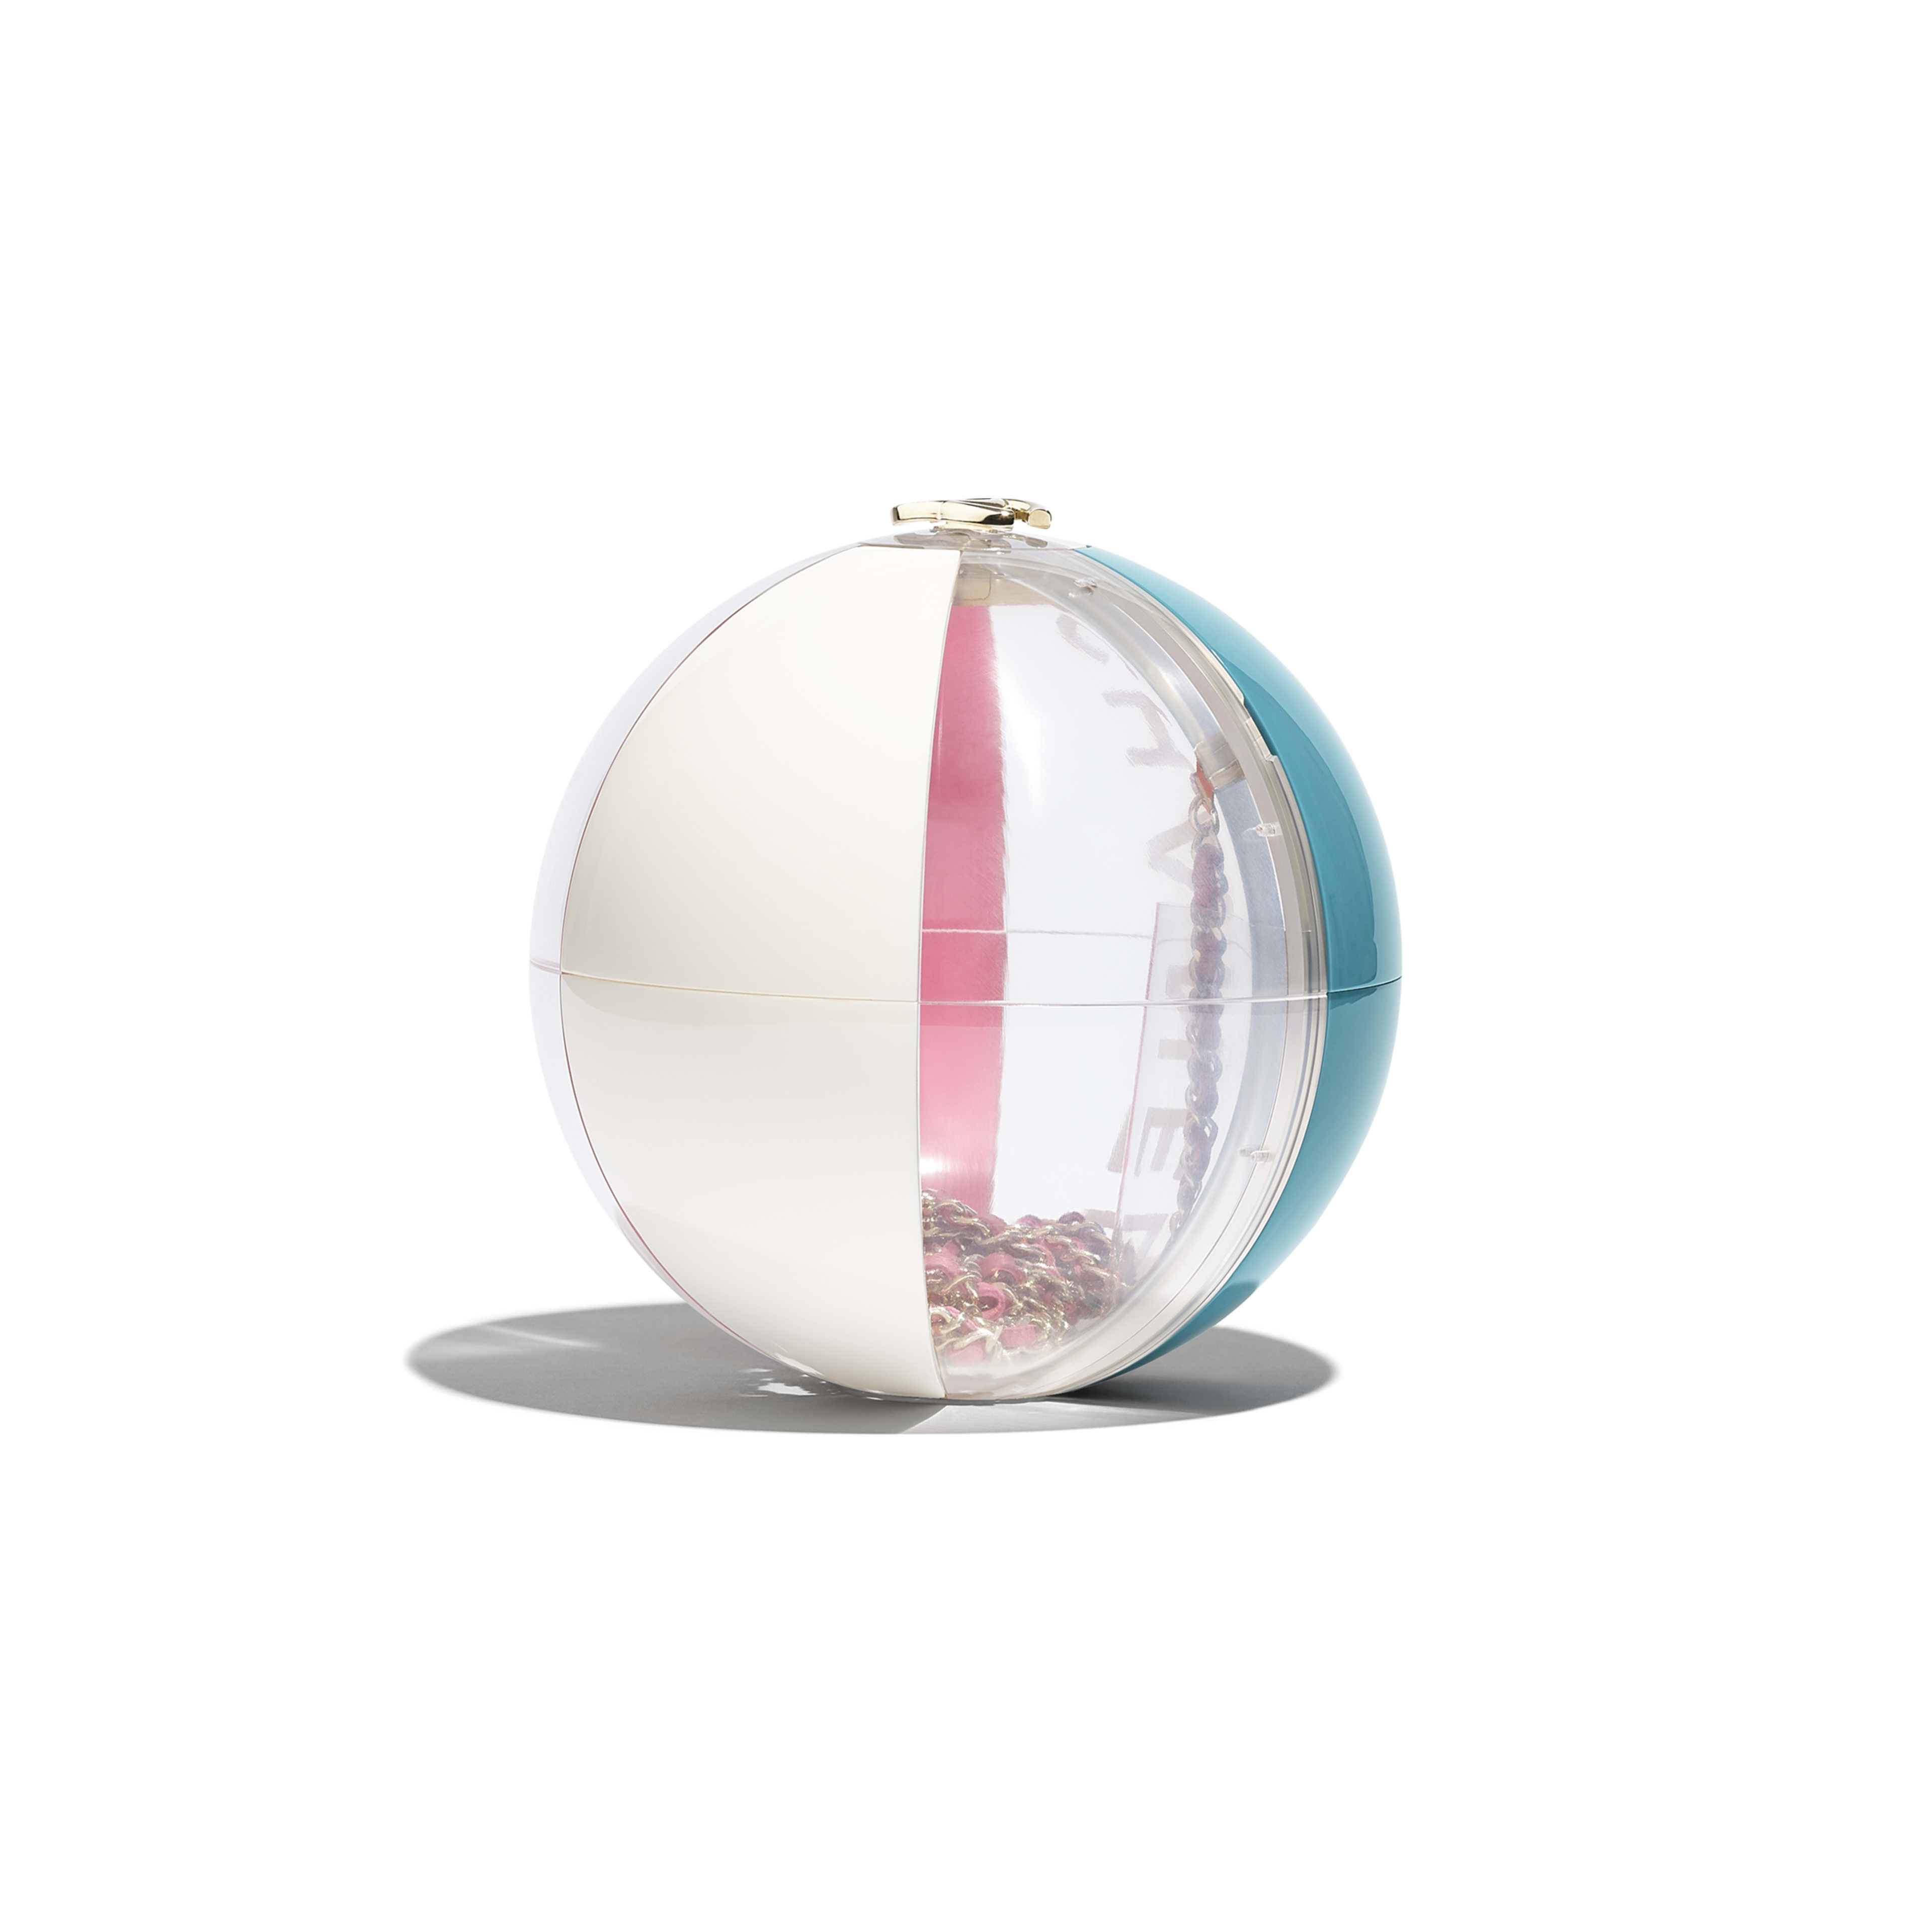 Beach Ball Minaudiere - Turquoise, Pink, White & Transparent - Resin & Gold-Tone Metal - Alternative view - see full sized version